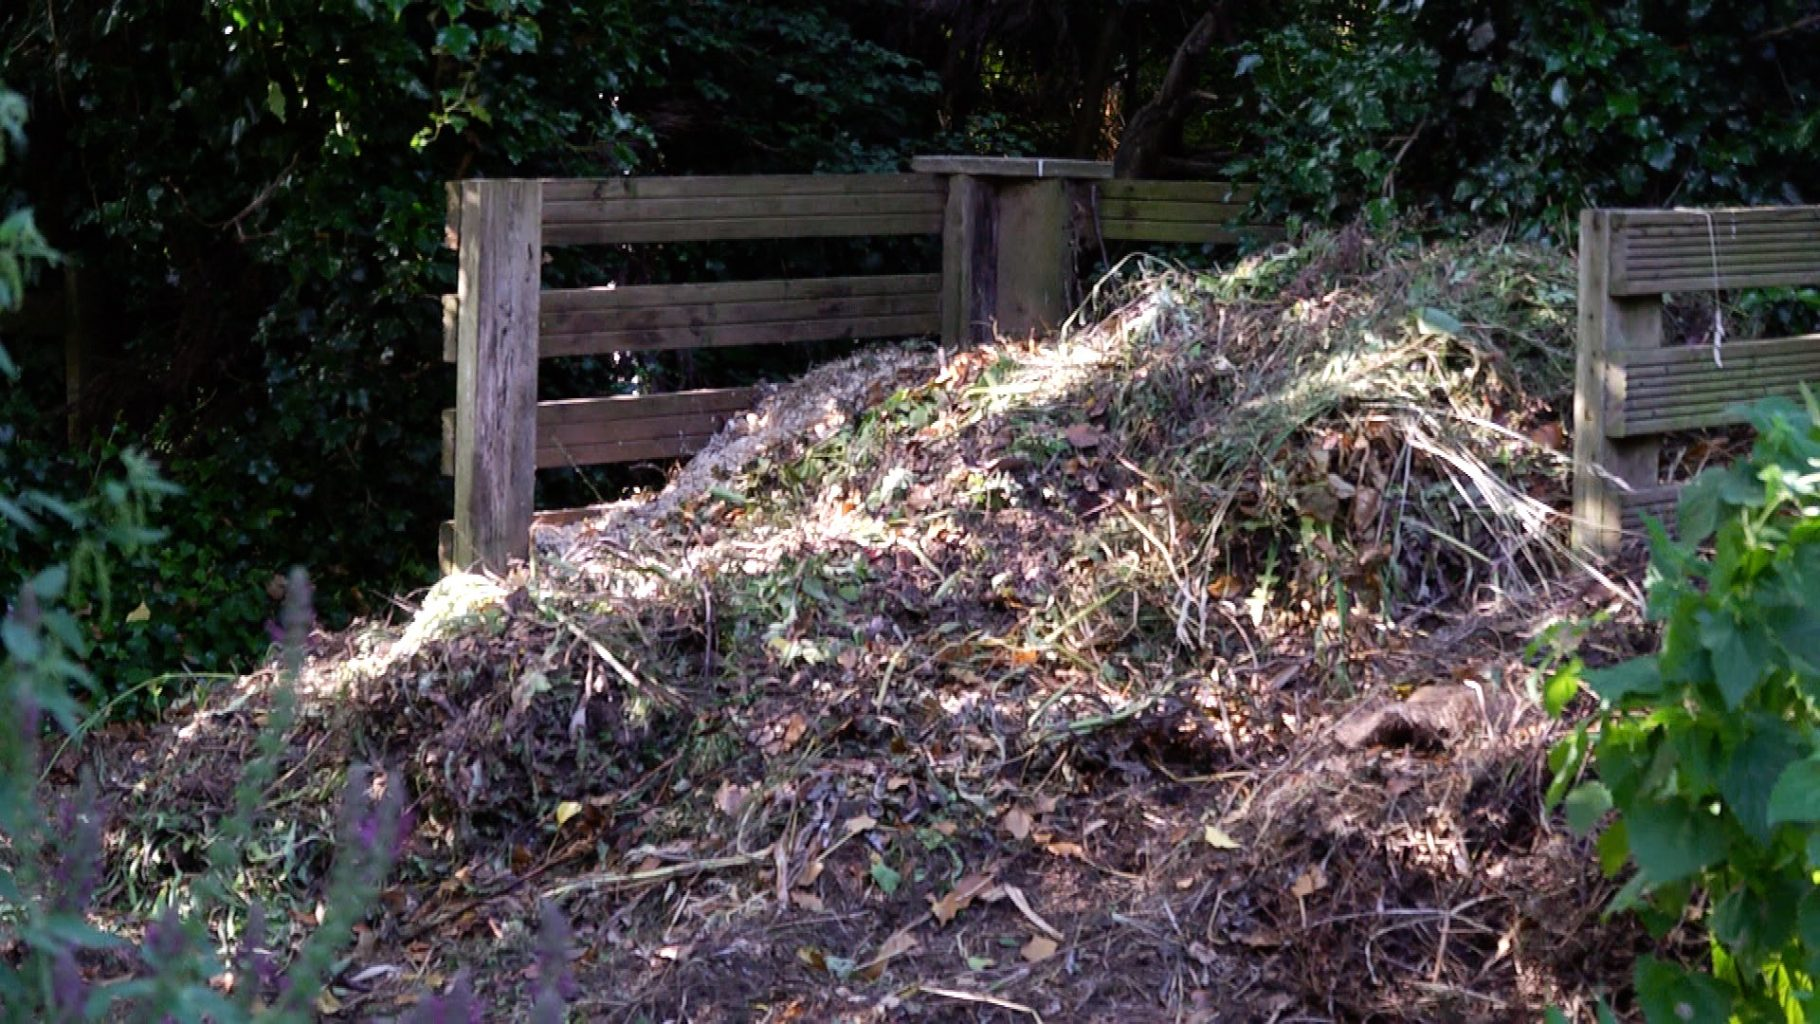 A large compost heap